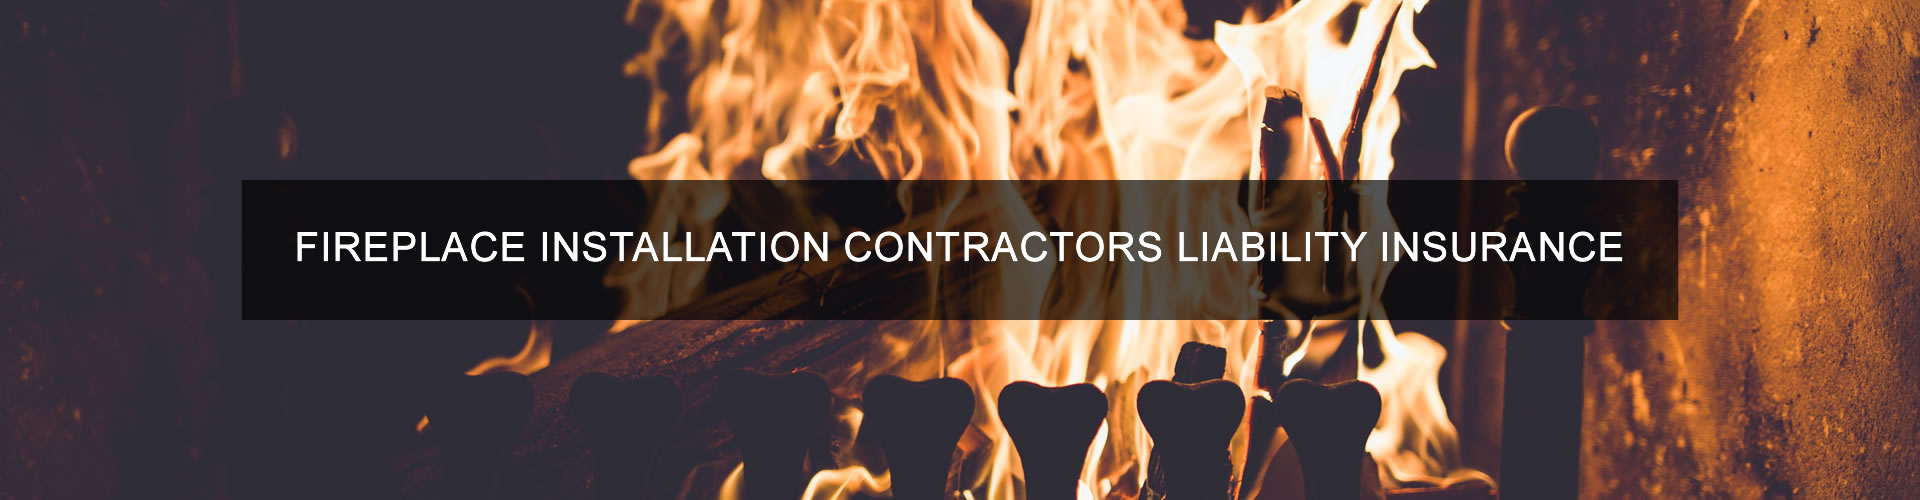 Fireplace Installation Contractors Liability Insurance